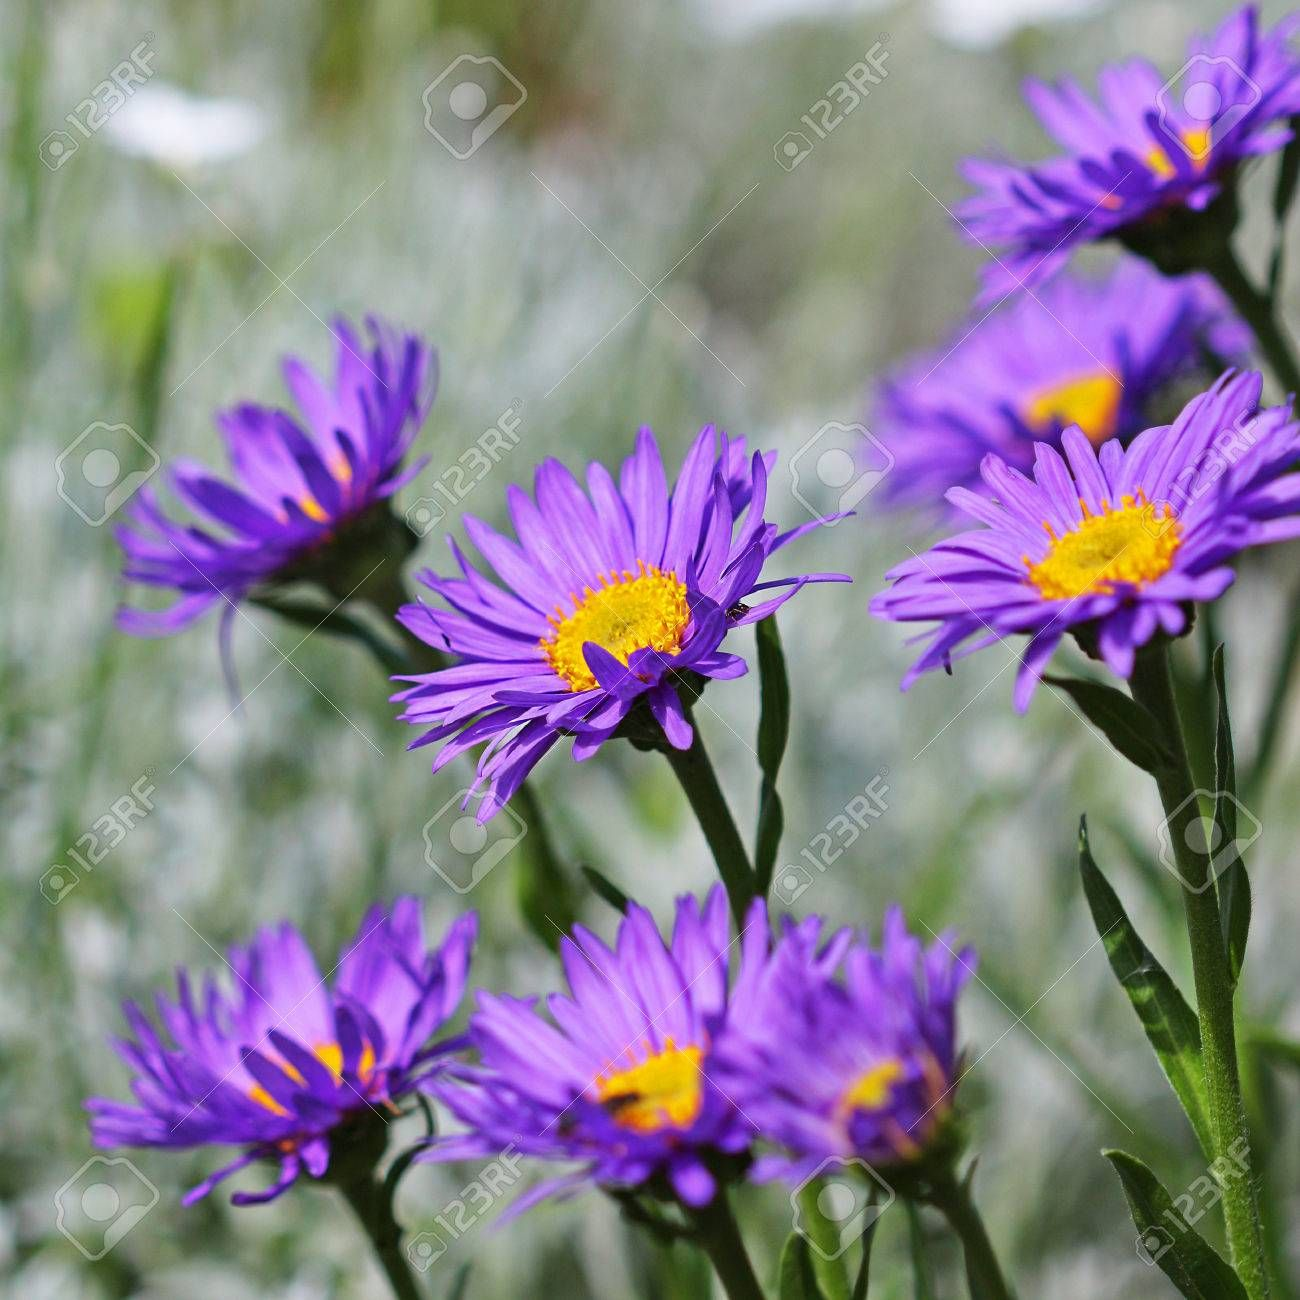 The alpine aster aster alpinus decorative garden plant with blue decorative garden plant with blue flowers izmirmasajfo